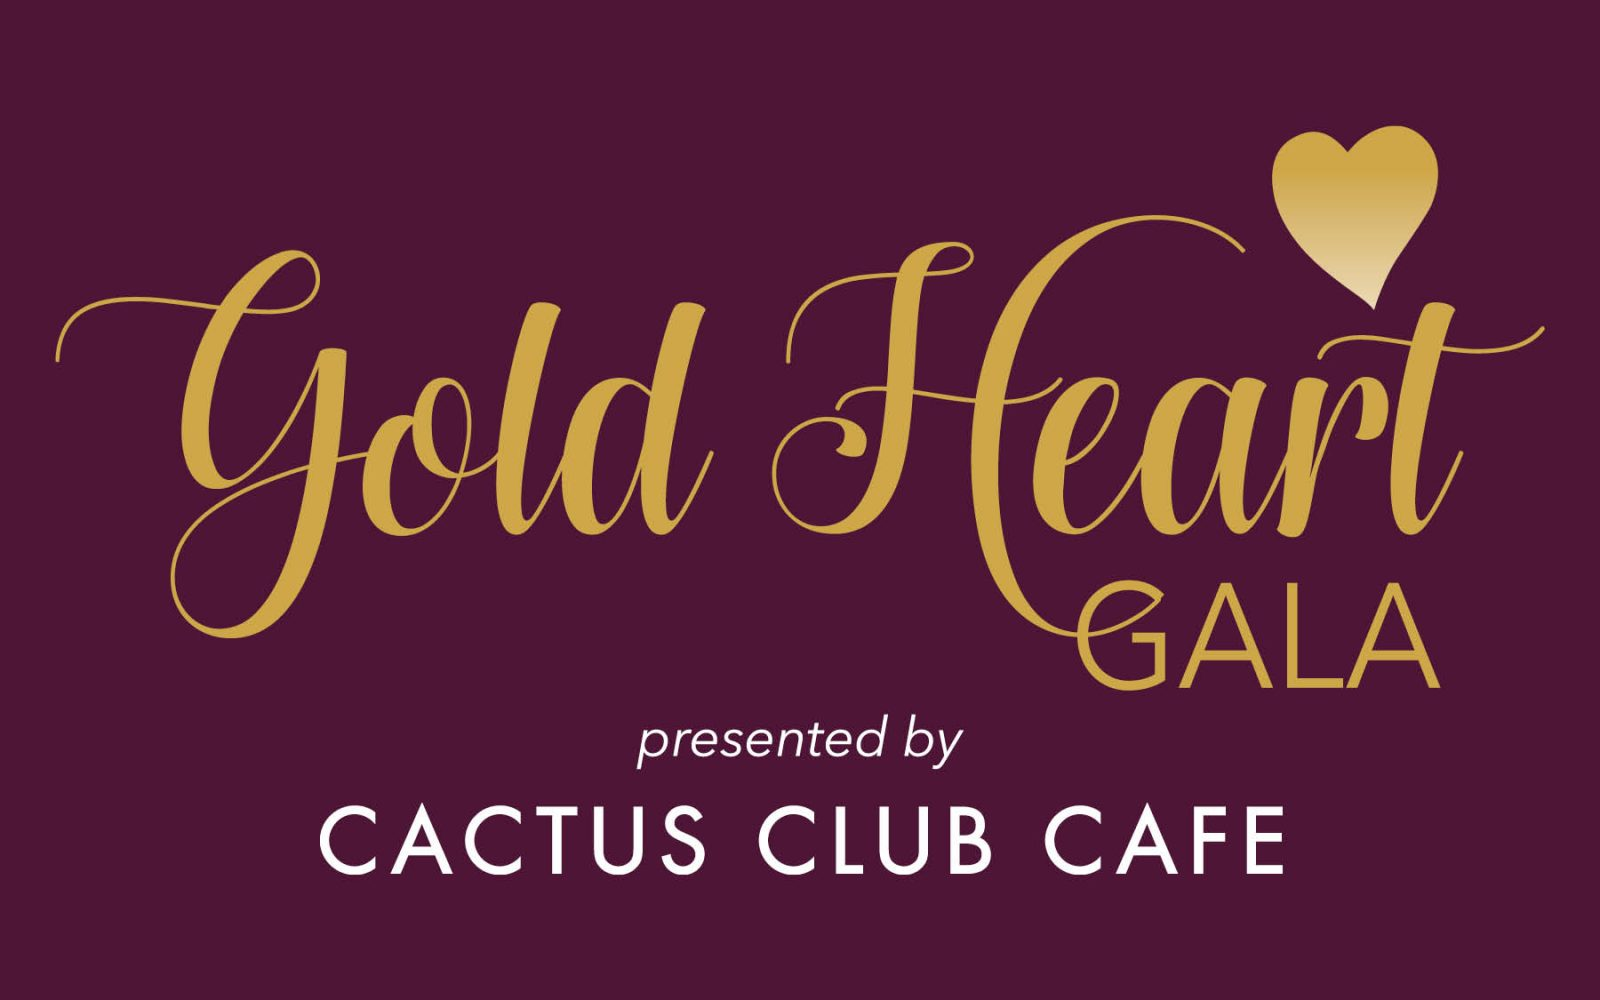 Gold Heart Gala presented by Cactus Club